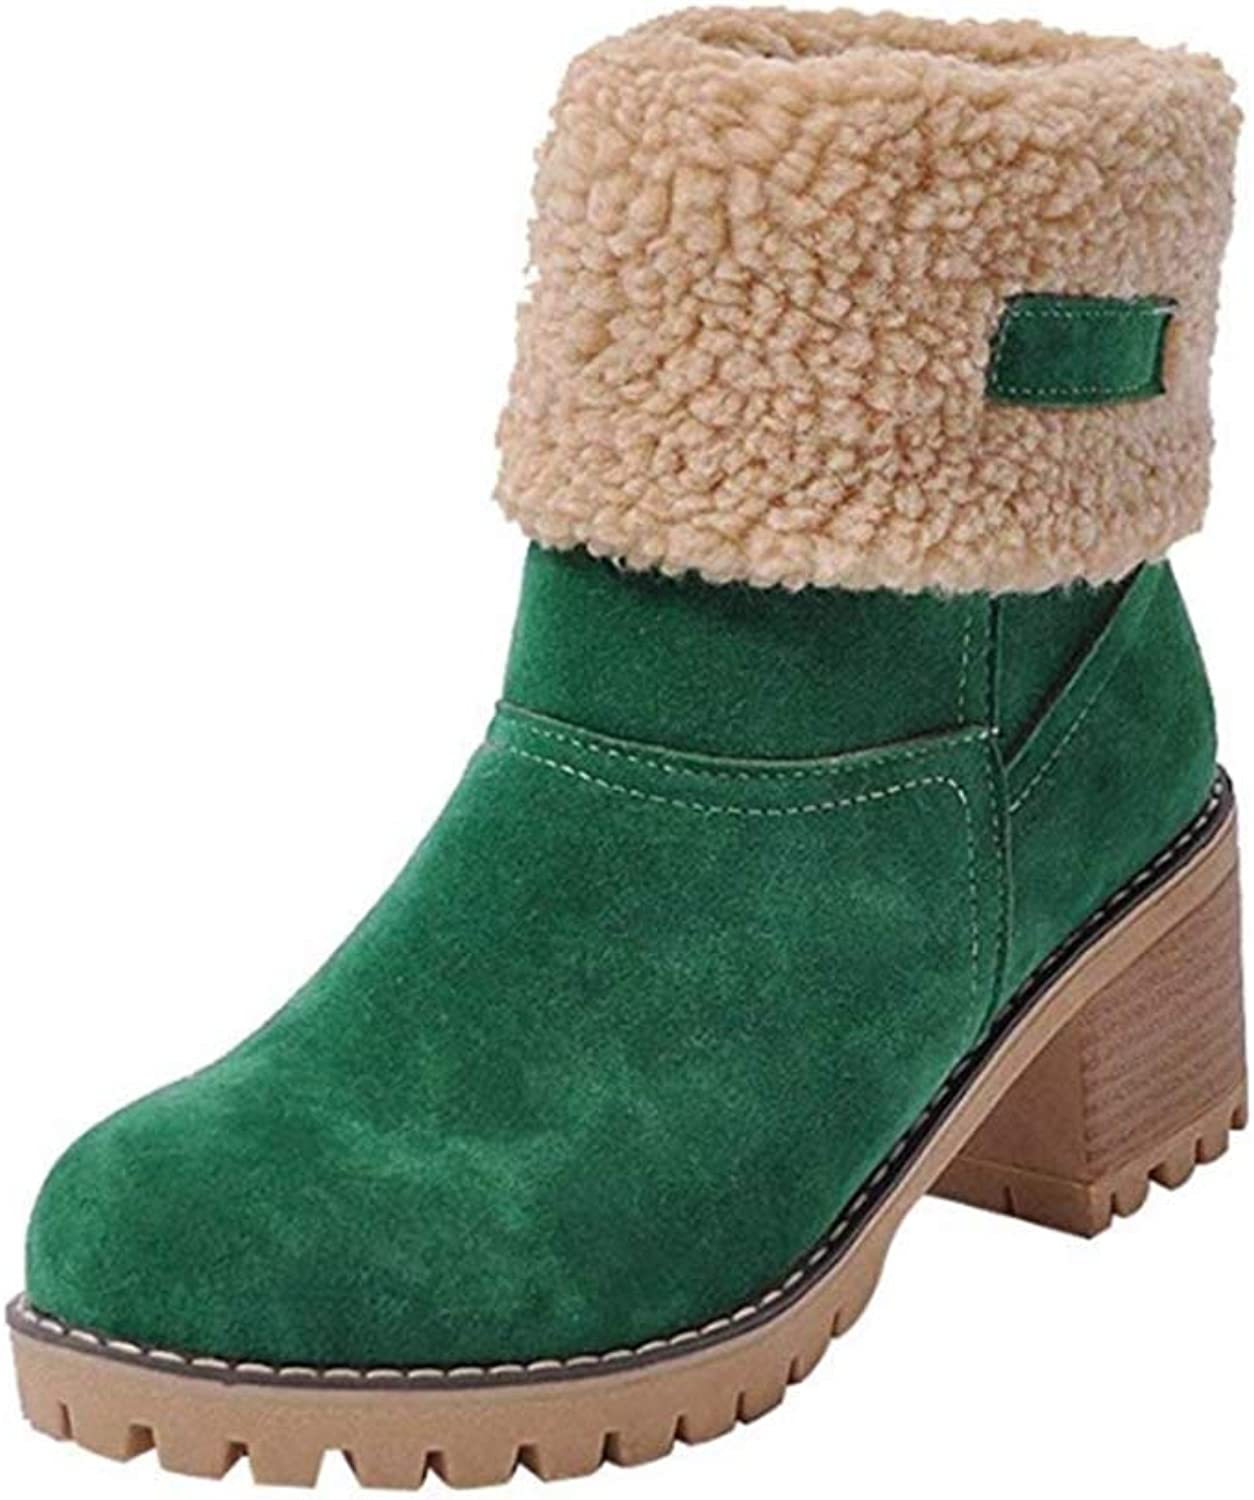 Women's Winter Short Boots Round Toe Suede Chunky Low Heel Warm Ankle Snow Booties,B,40